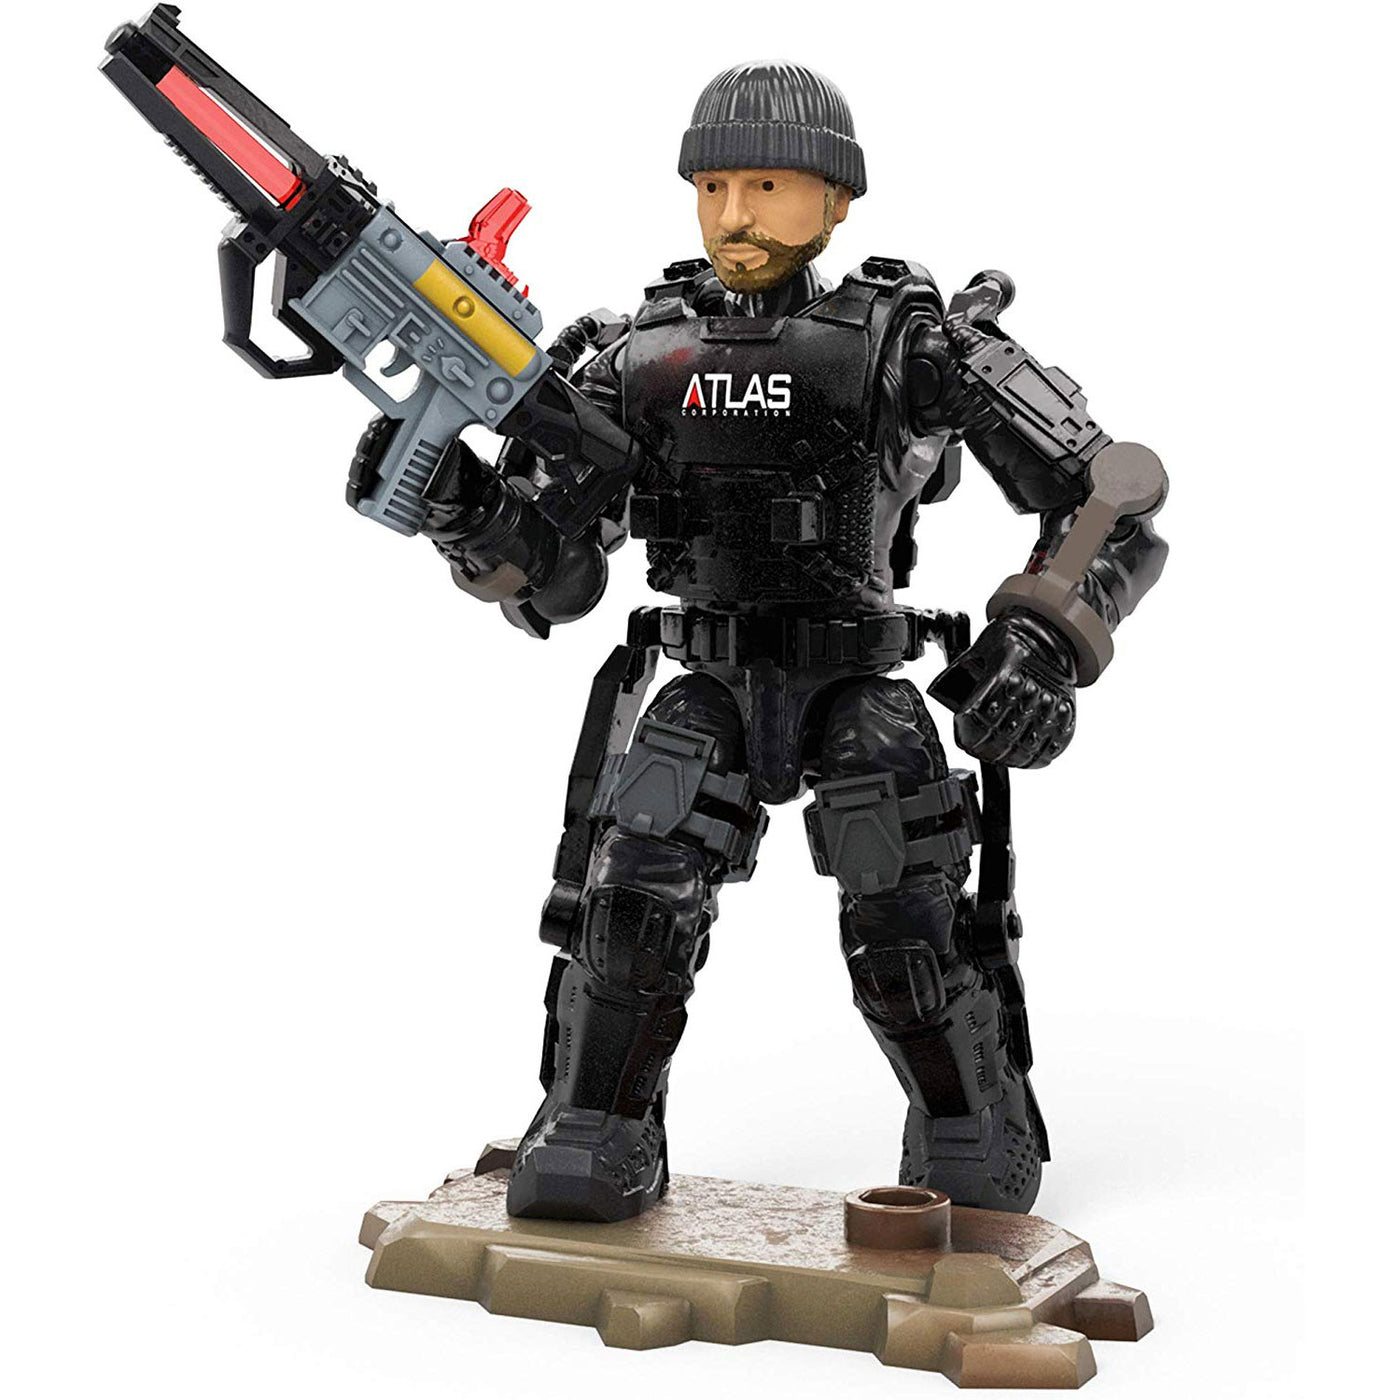 Gideon Mega Construx Call Of Duty Specialist Series 5 Figure Pack The Brick Show Shop